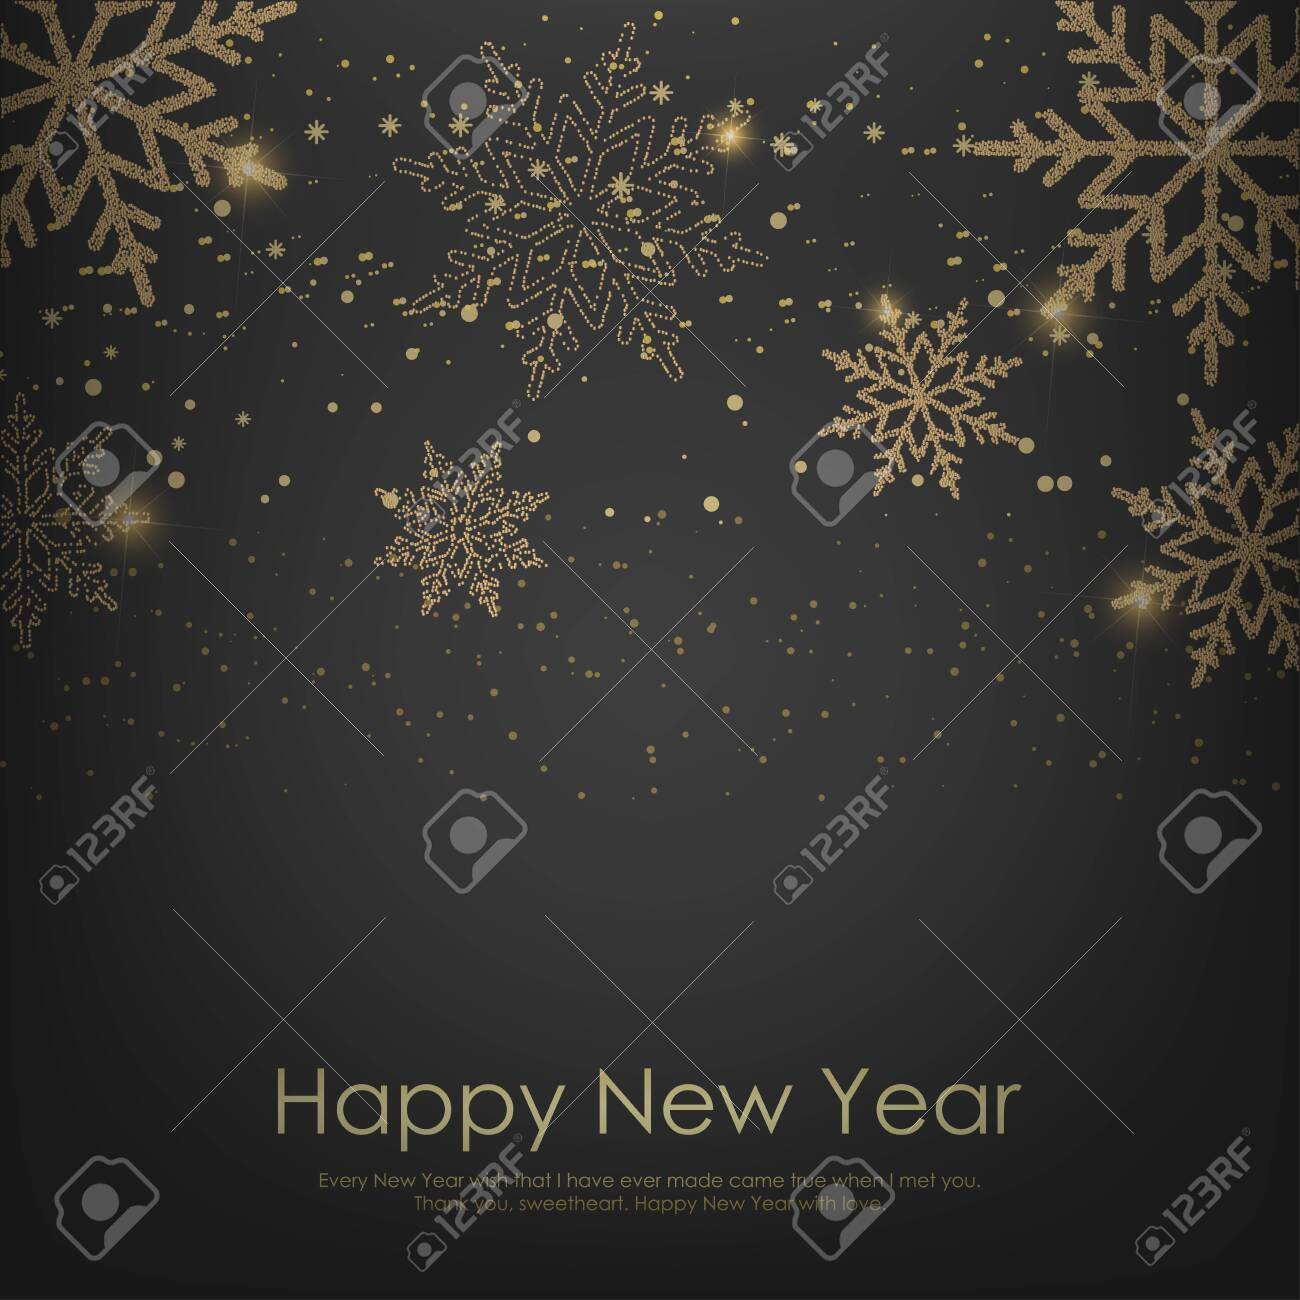 Happy New Year or Christmas card with falling golden snowflakes. Vector. - 131003932